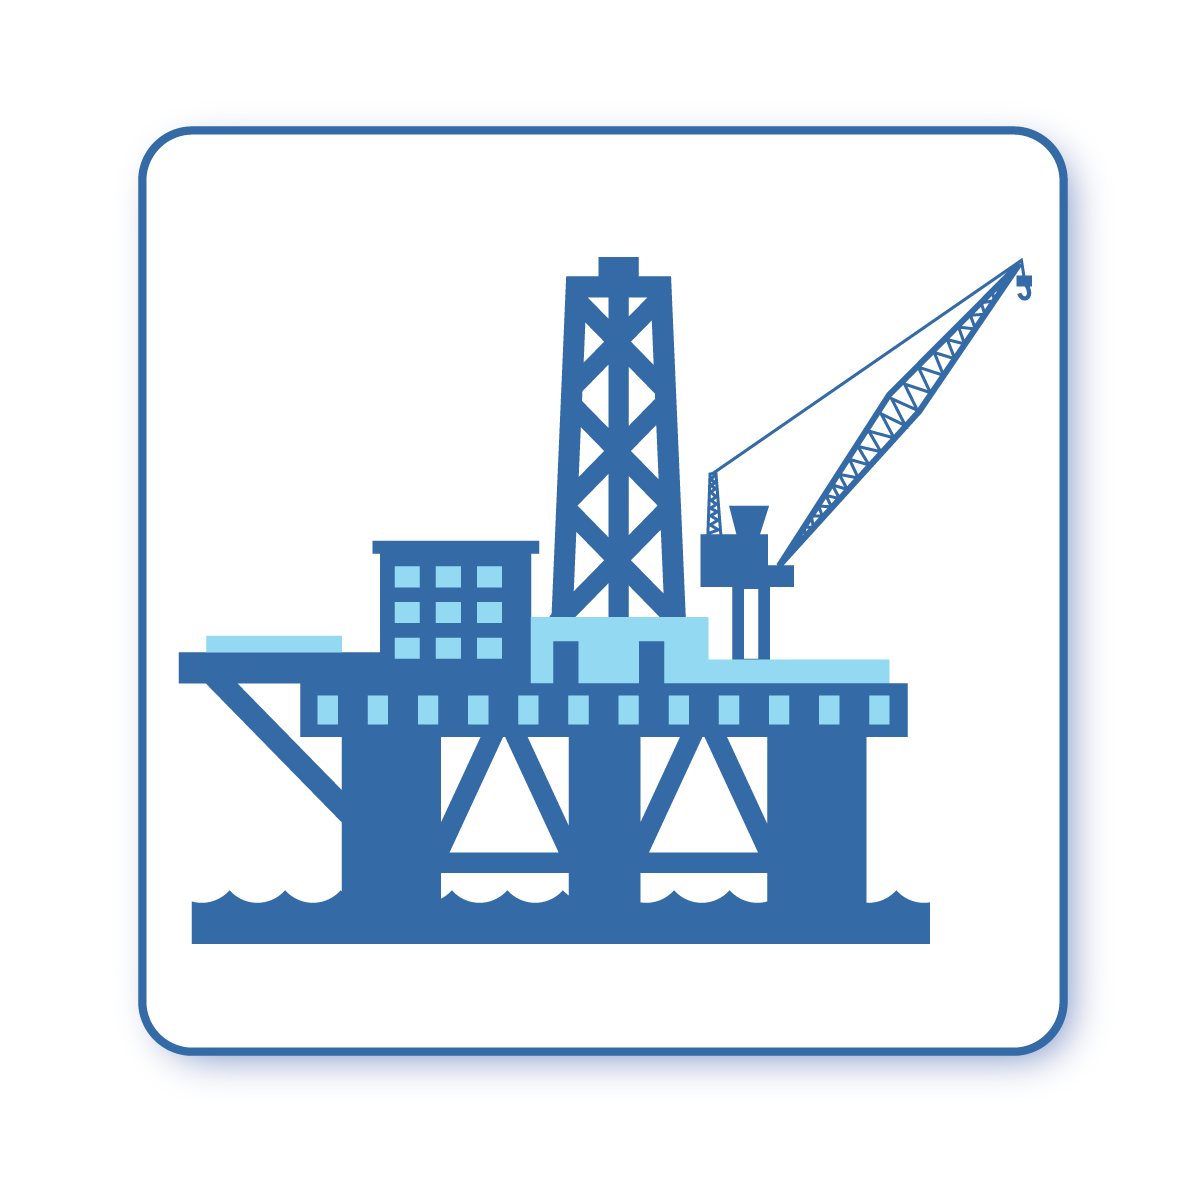 Well Operations Management Plan WOMP is required if you are drilling an offshore well in Commonwealth waters.